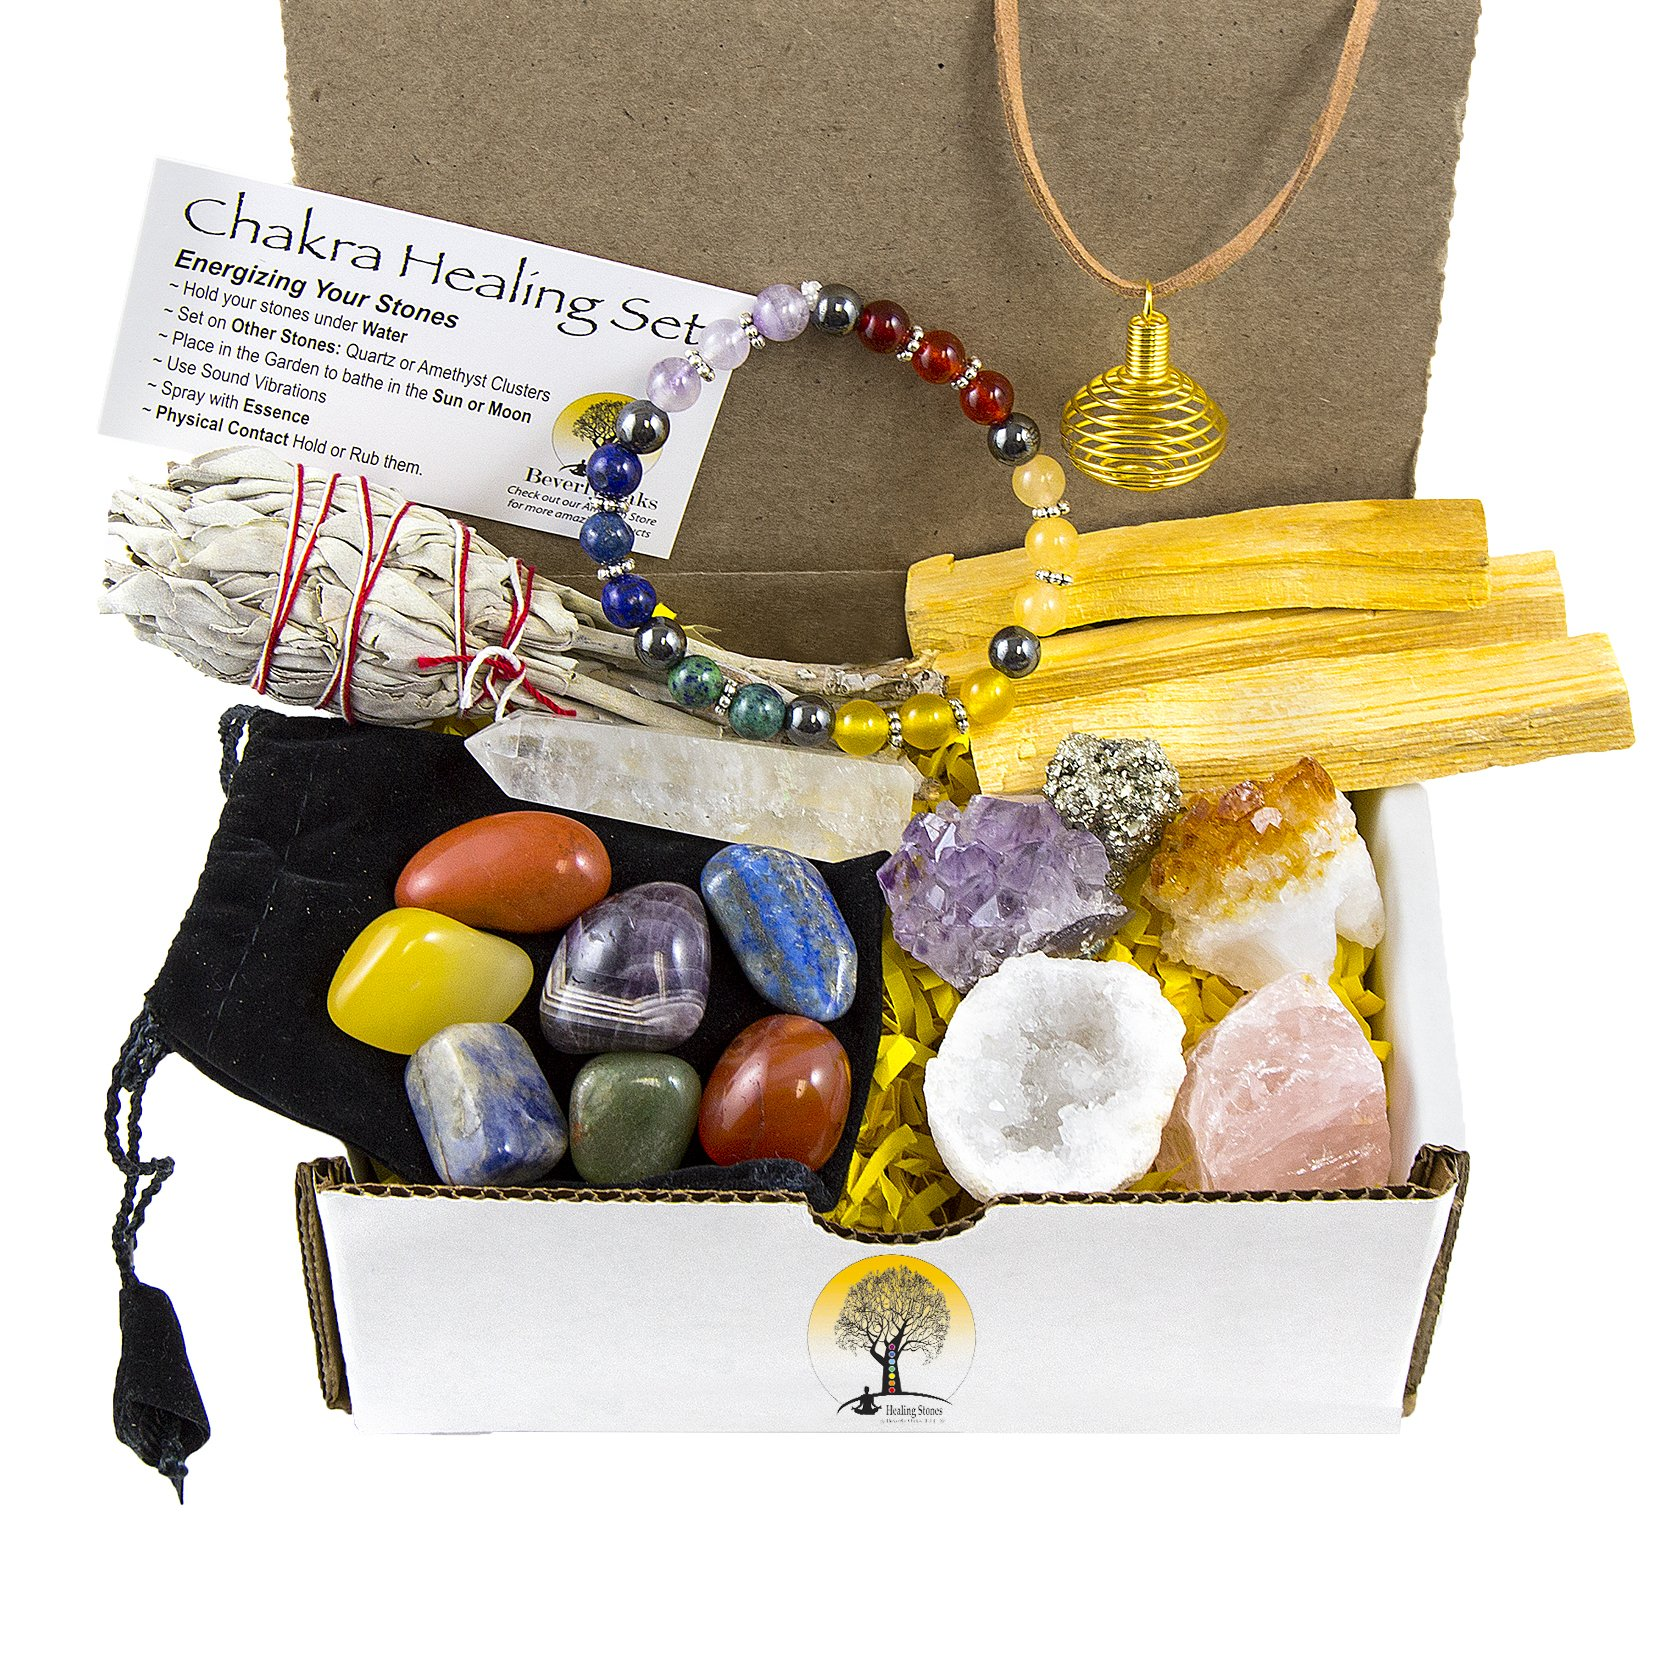 White Sage, Palo Santo Wood & Crystal Healing Kit (17Pc) ~ Smudge Stick, Palo Santo Sticks, Raw Crystals, Quartz Obelisk, 7 Chakra Stones, +Bracelet & Spiral Pendant Necklace w COA & Info Card by Beverly Oaks